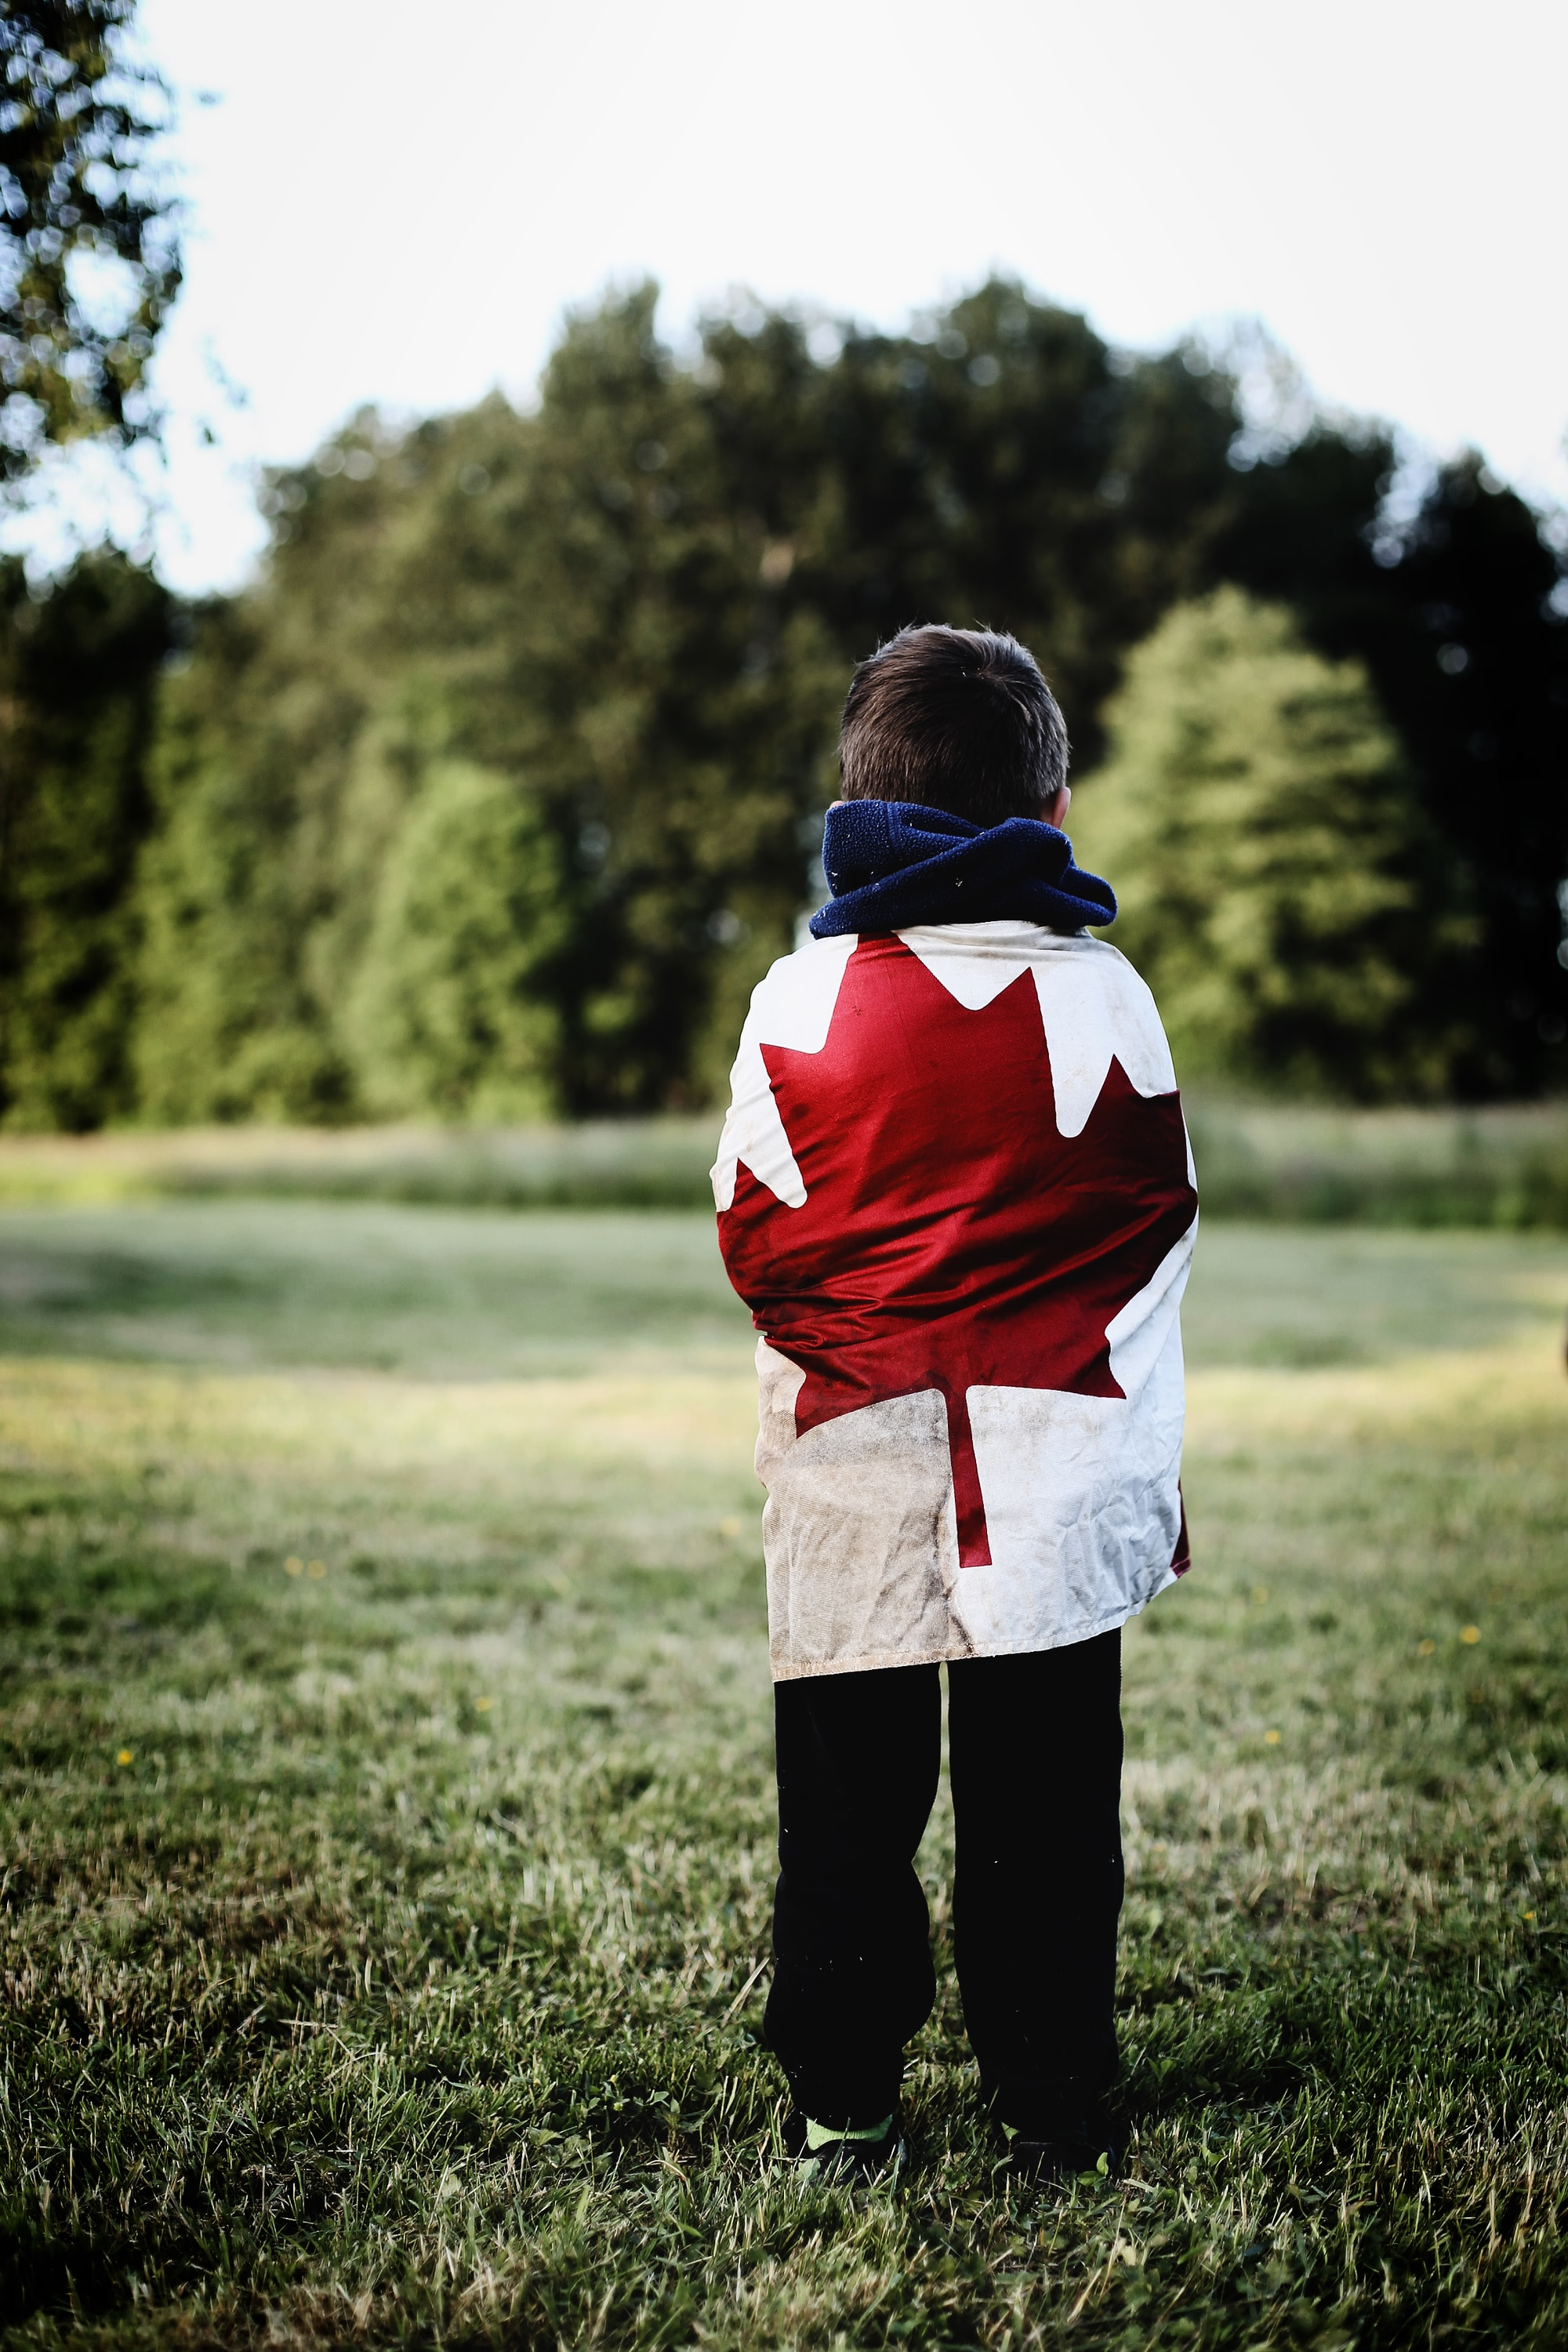 Blog: The Educational Experiences of Military-Connected Students in the K-12 System: A Canadian Perspective